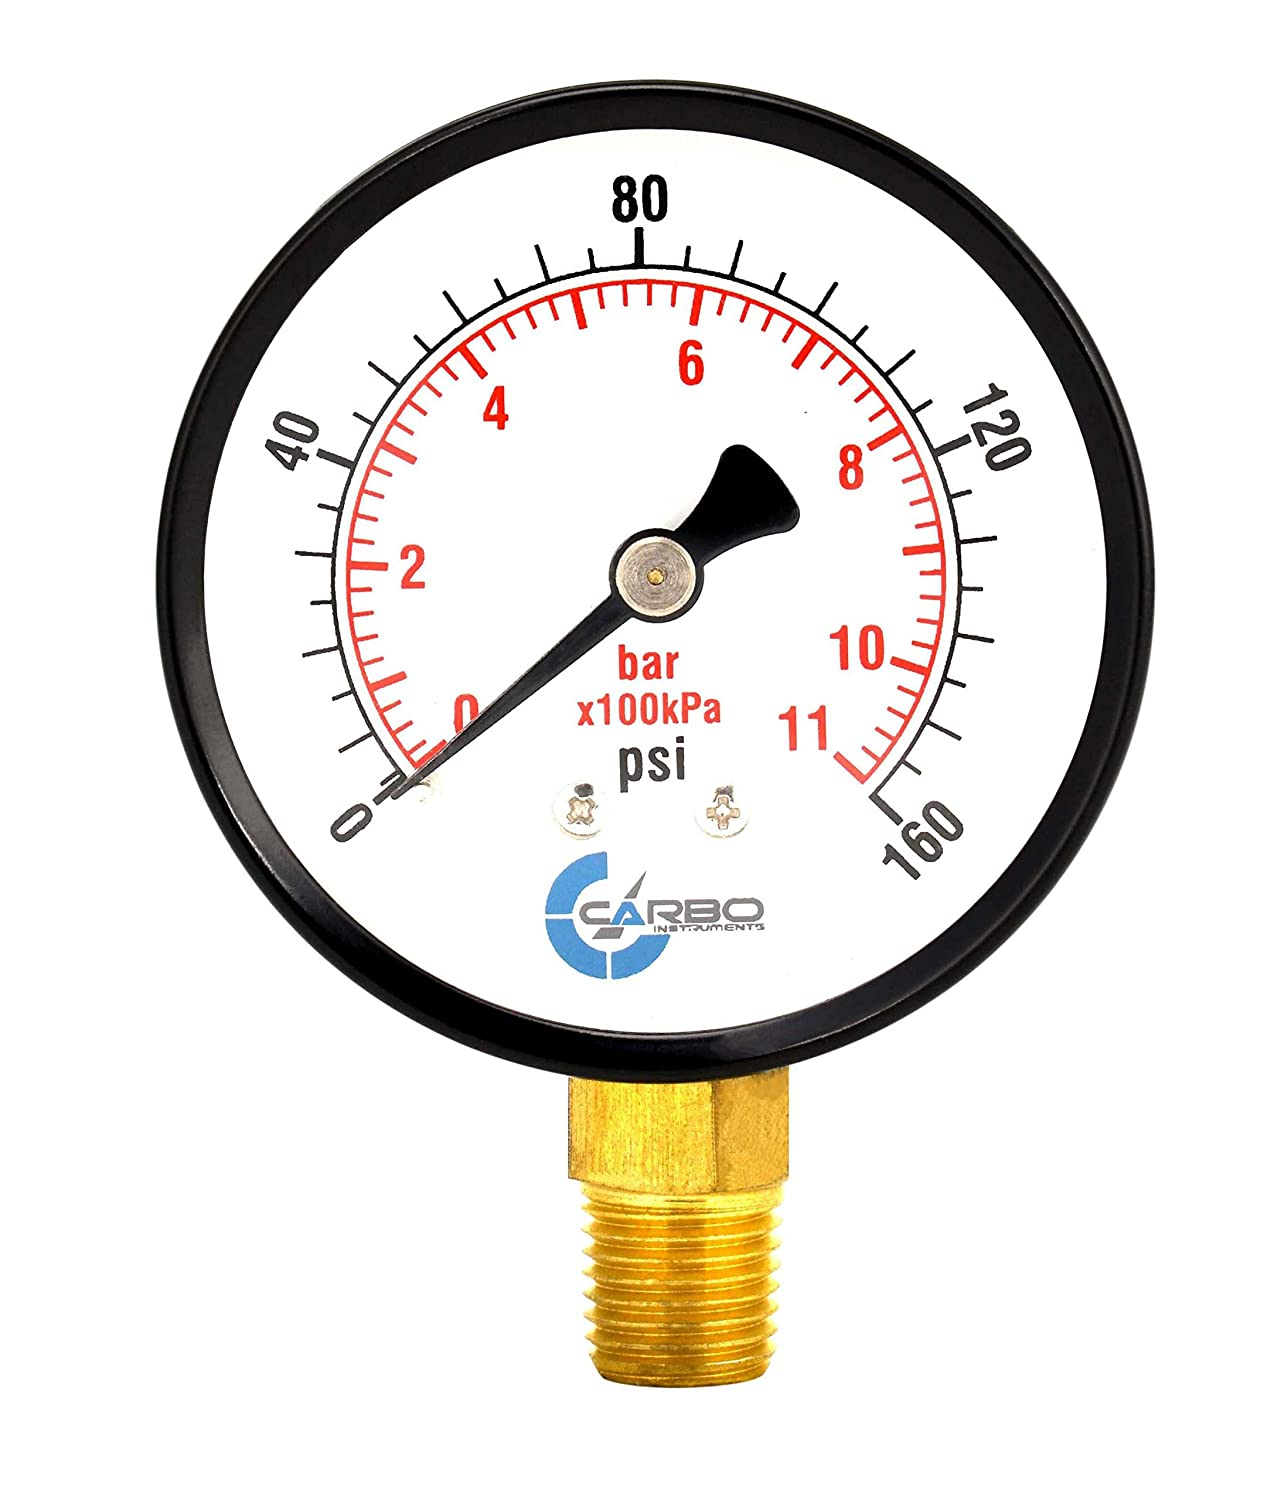 0-160 psi//kPa Dry Lower Mount 1//4 NPT CARBO Instruments 2-1//2 Pressure Gauge Chrome Plated Steel Case